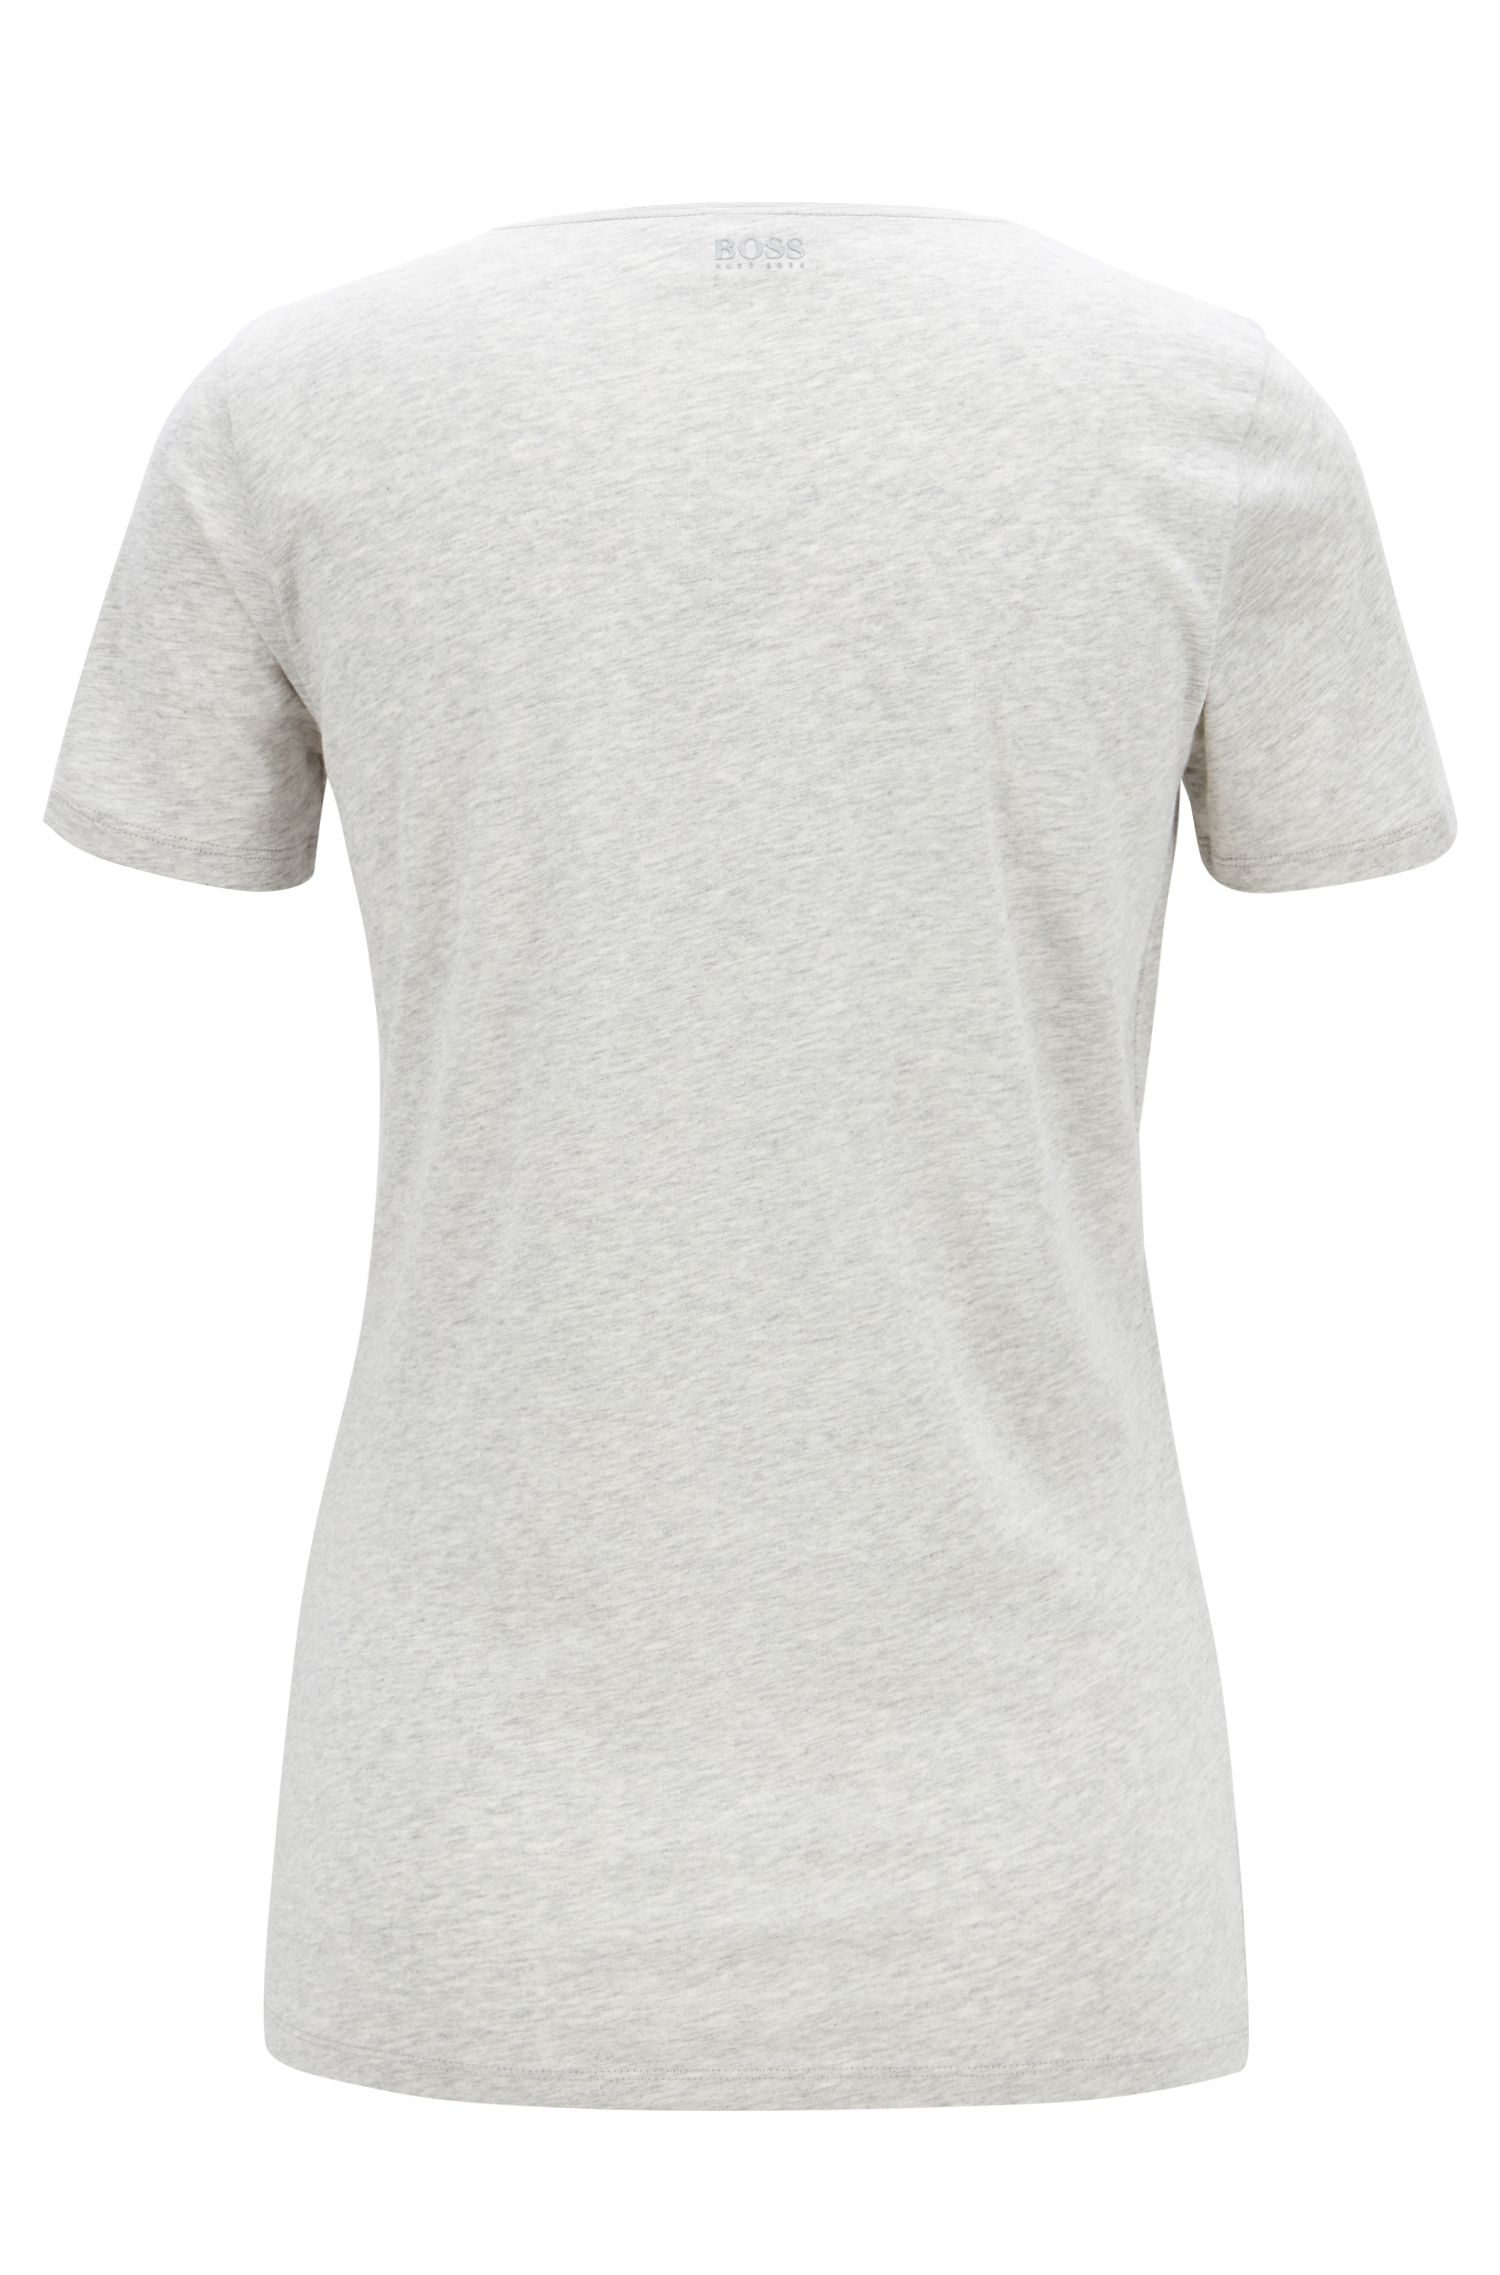 Single-jersey T-shirt in cotton with checked logo print, Silver